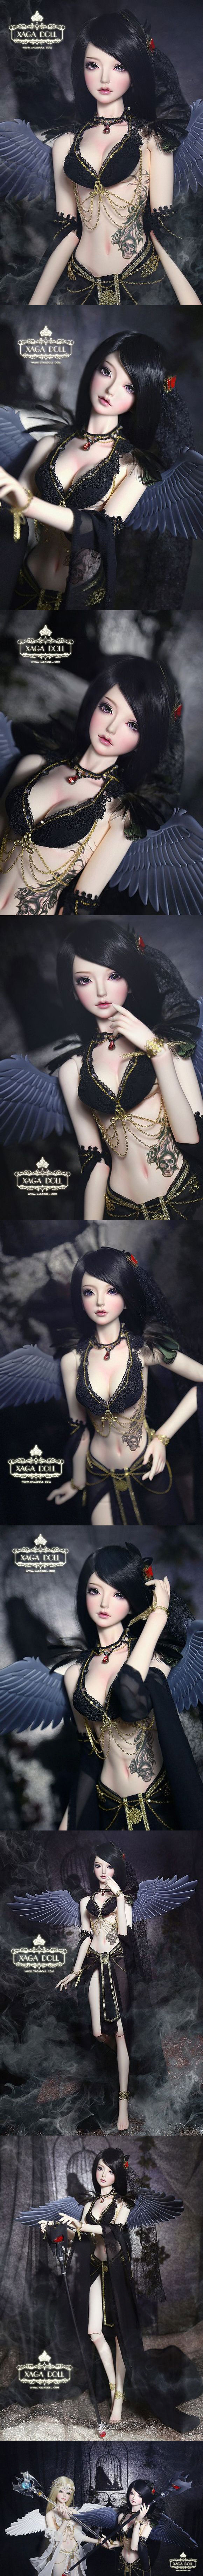 Pin on Resin ball jointed dolls